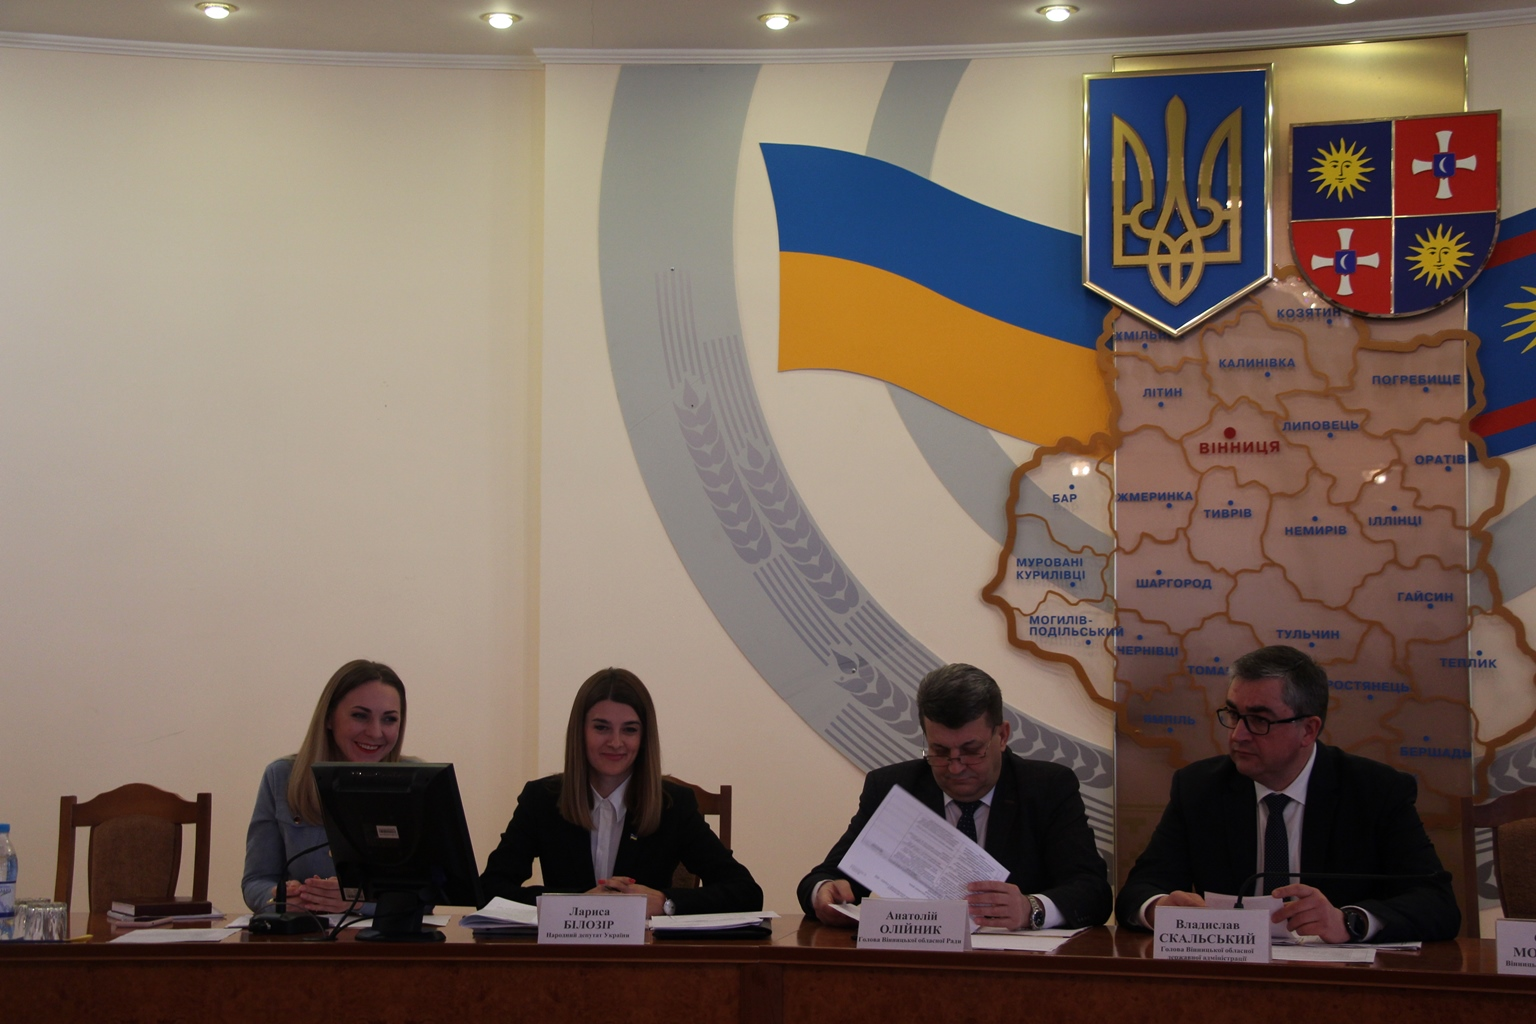 Amendments to the Constitution in terms of decentralization will take place if they are supported by the local leaders, - public consultations continue in Vinnytsia